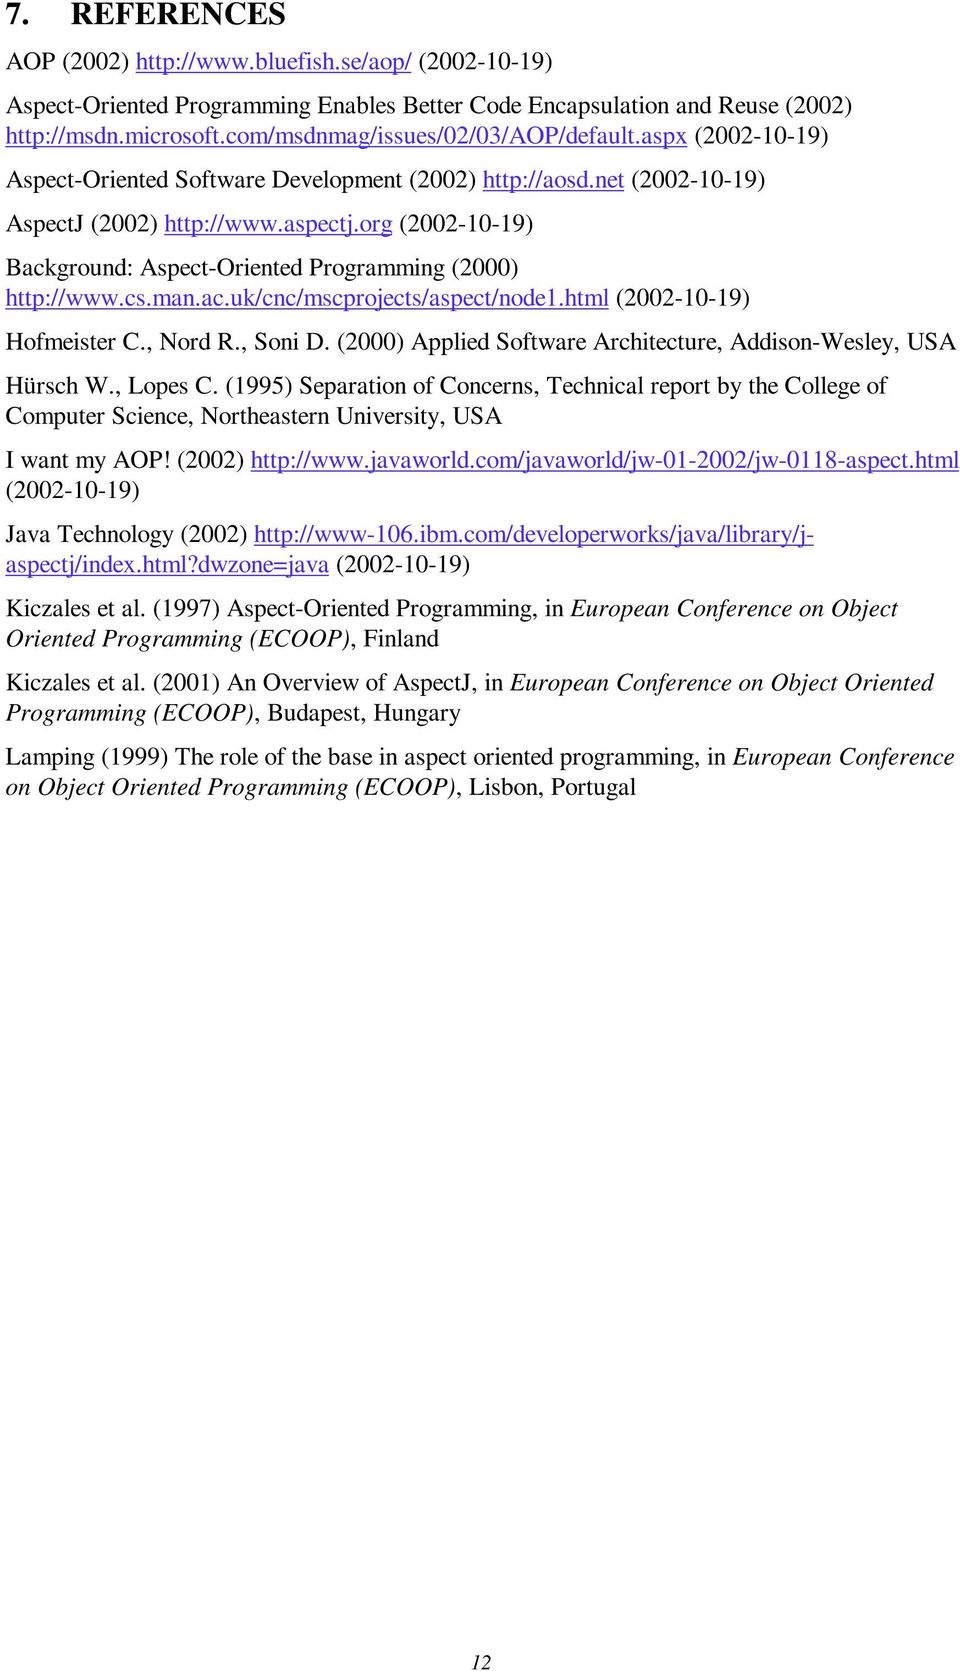 org (2002-10-19) Background: Aspect-Oriented Programming (2000) http://www.cs.man.ac.uk/cnc/mscprojects/aspect/node1.html (2002-10-19) Hofmeister C., Nord R., Soni D.